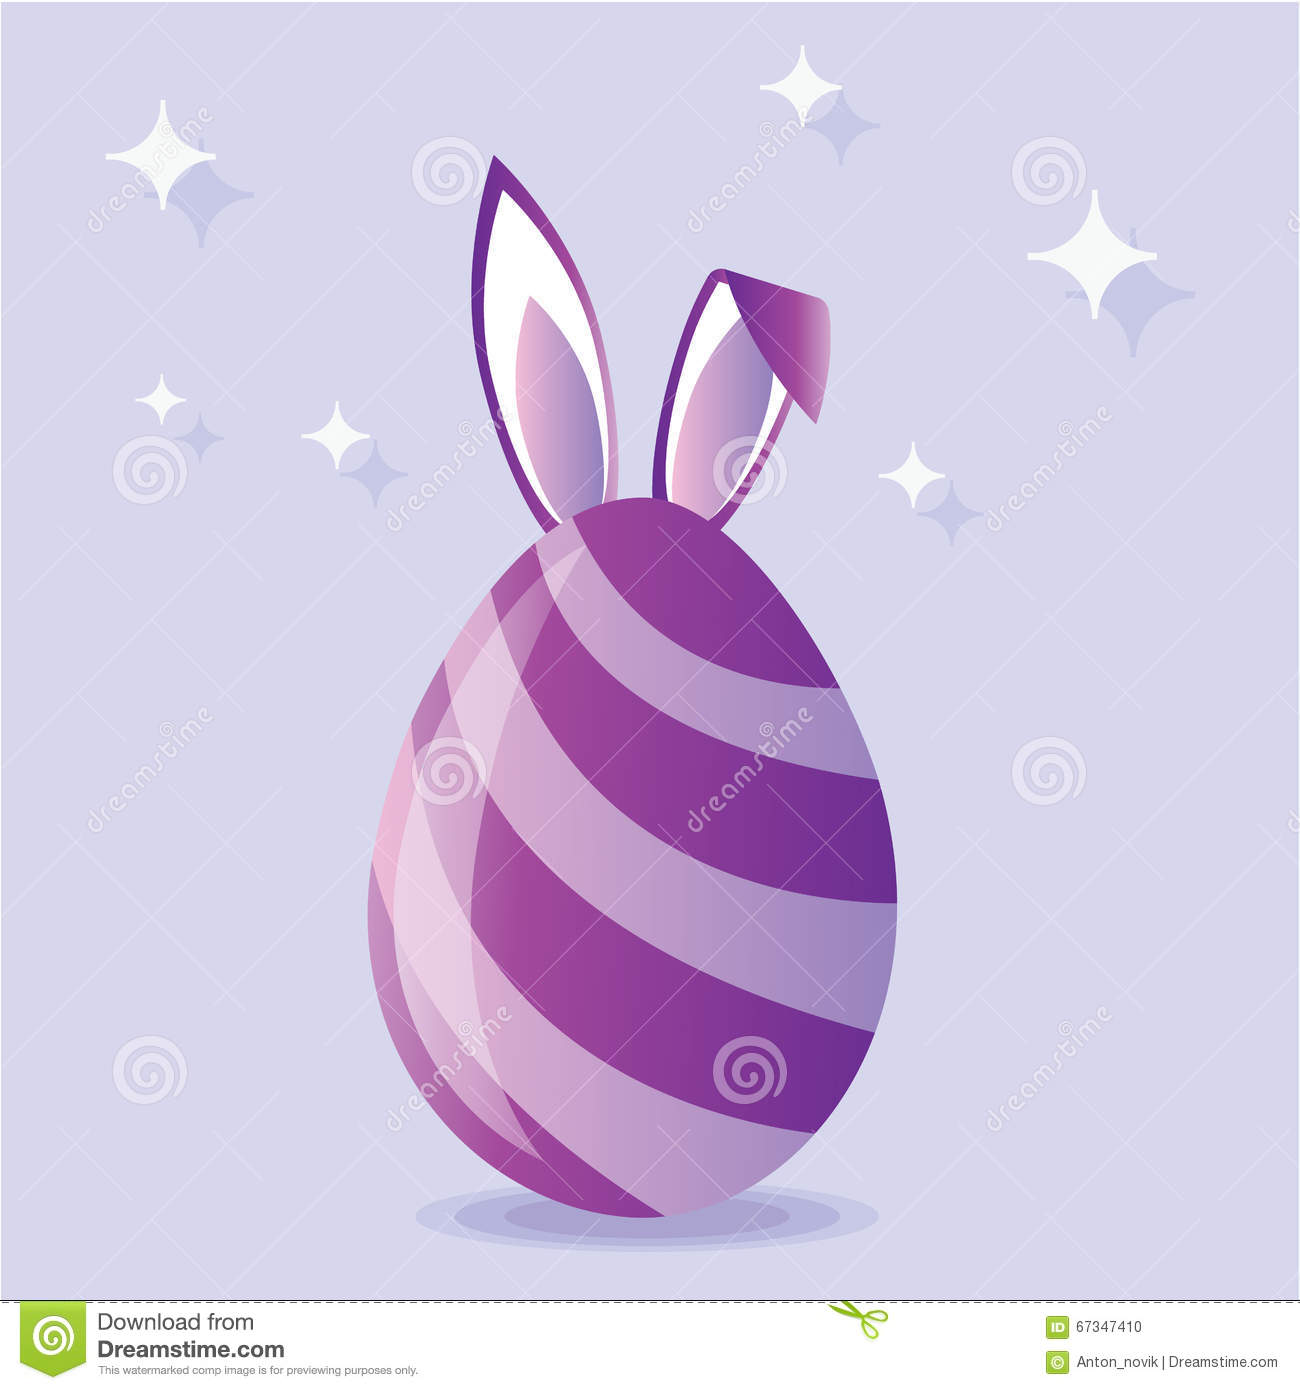 Purple easter egg clipart vector download Purple Easter Egg With Bunny Ears Vector Stock Vector - Image ... vector download